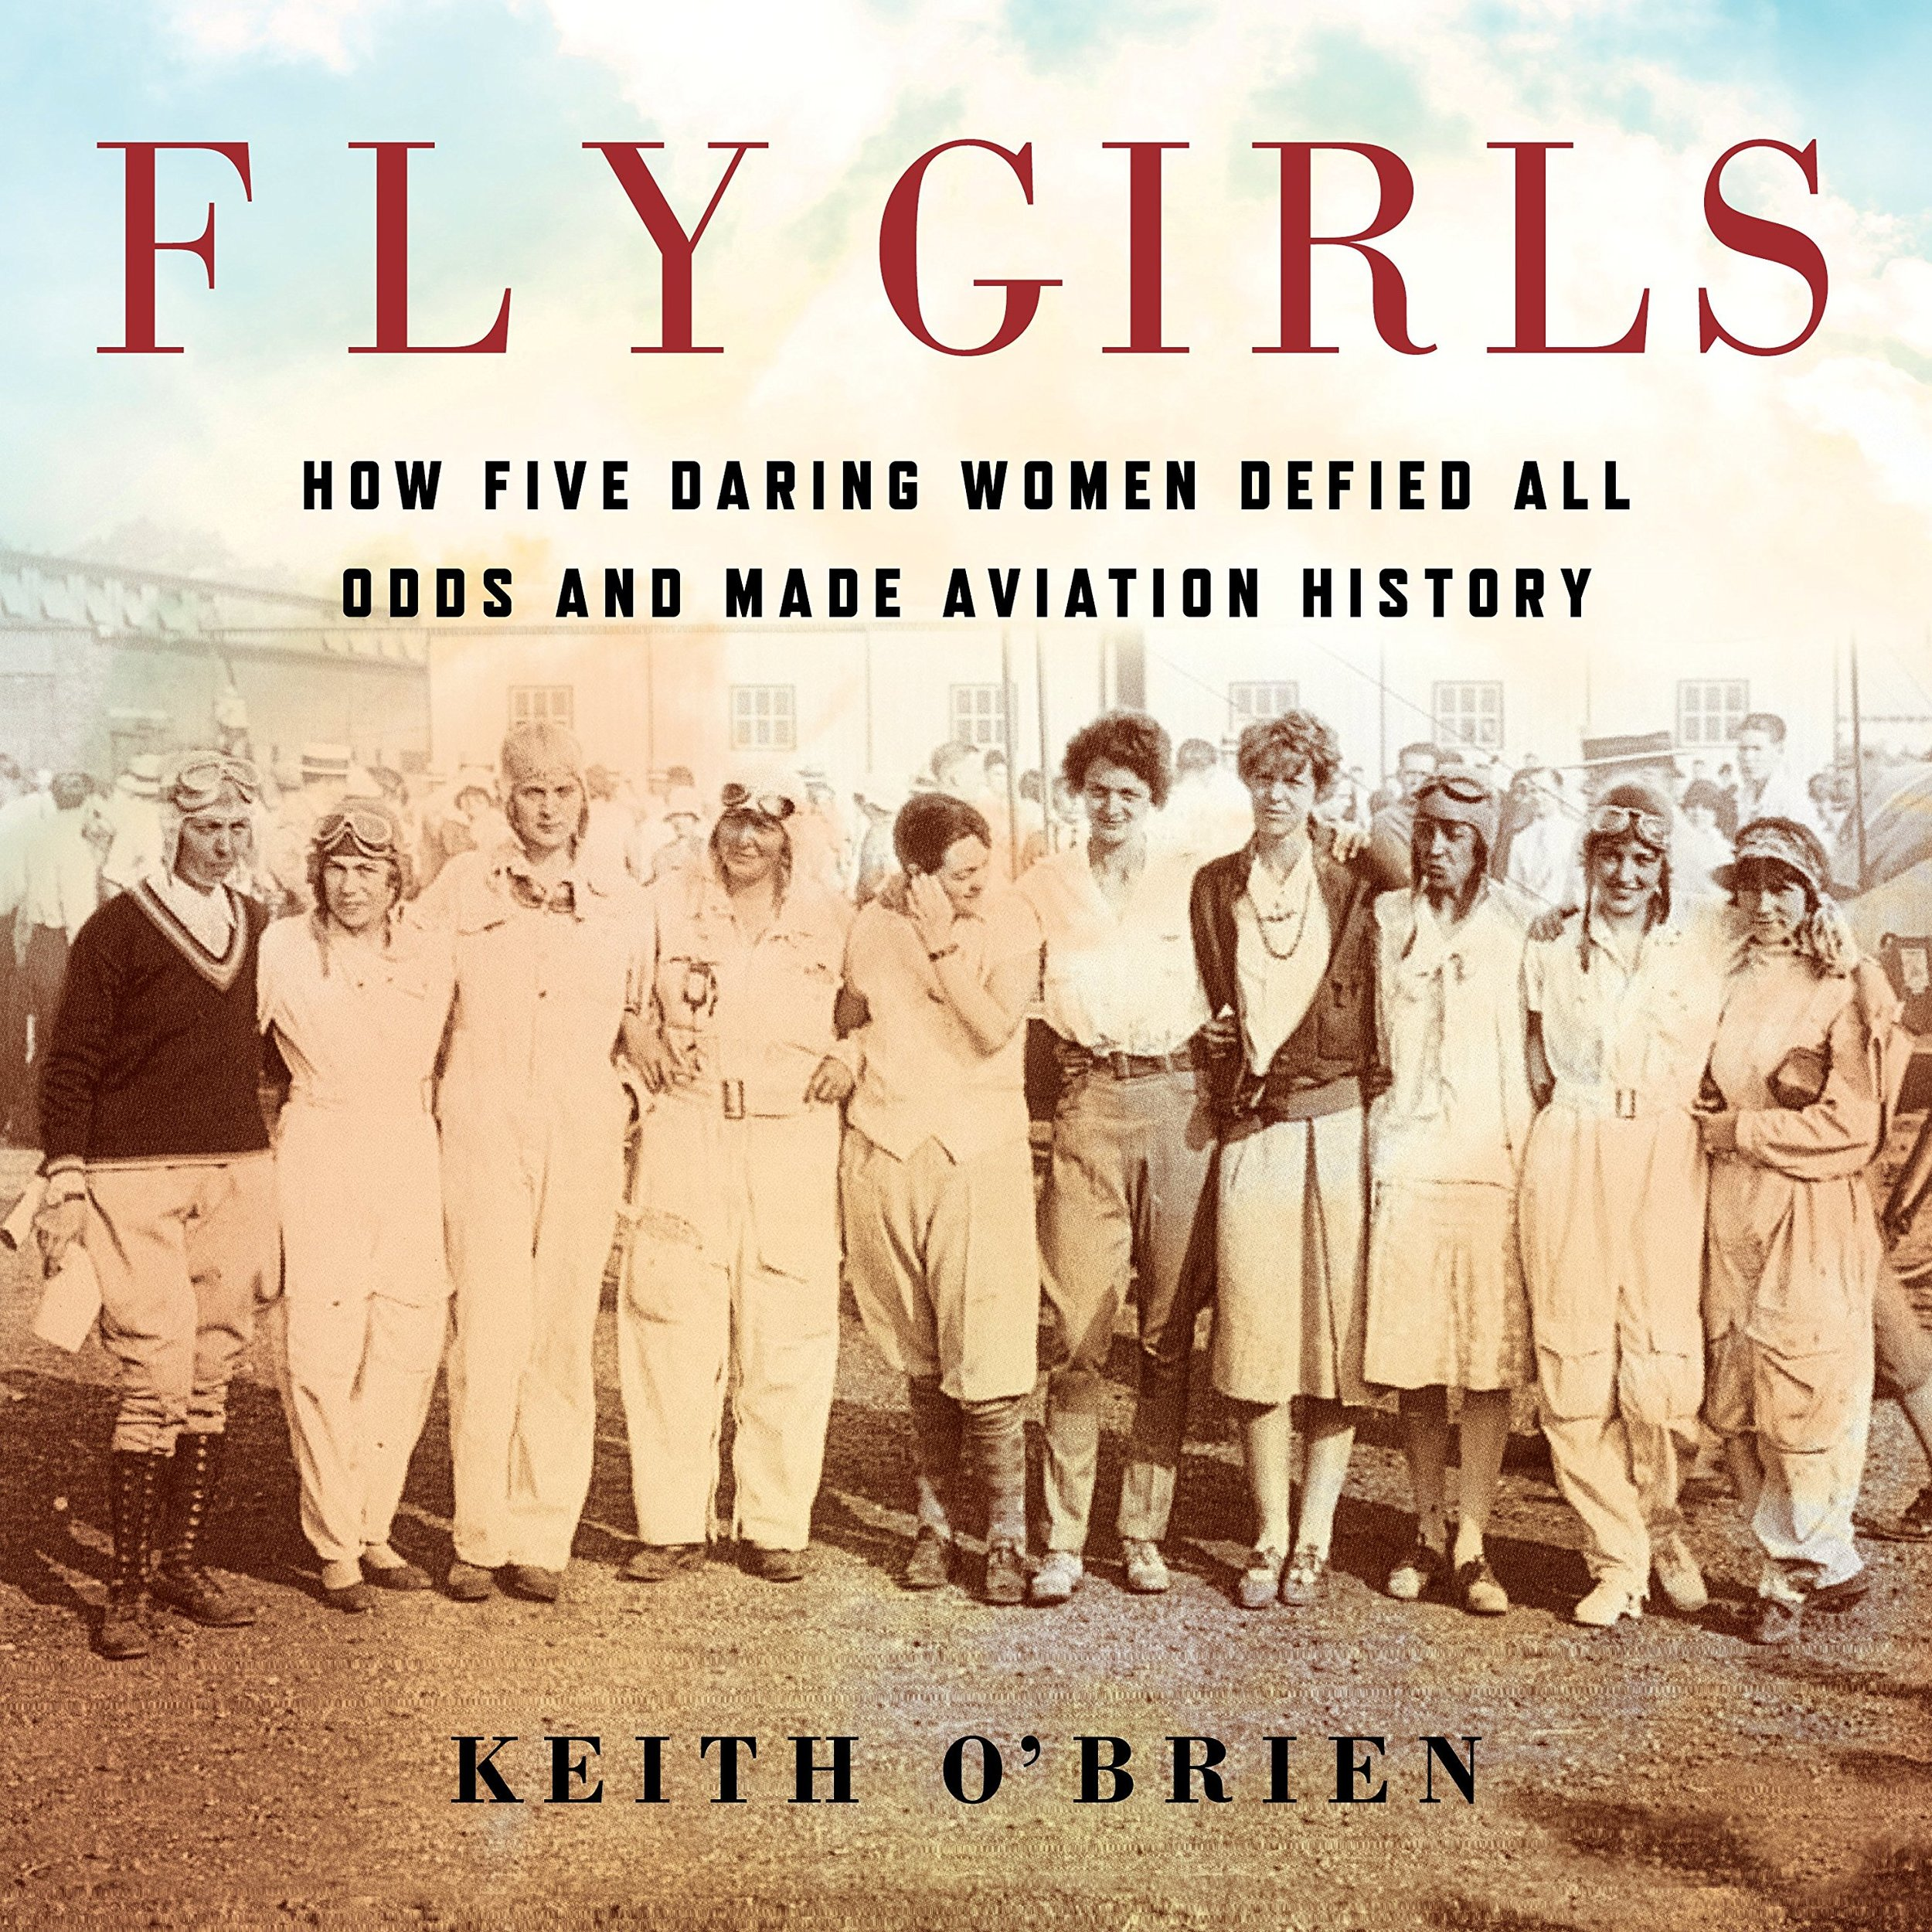 FLY GIRLS - Author Keith O'Brien shares the feats of women who charted the skies and laid the foundation for the organization the Ninety-Nines, made up of female aviators. This opened the door for women to pilot in the military and, much later, to participate in space exploration. ✈️ Available on Amazon.com.